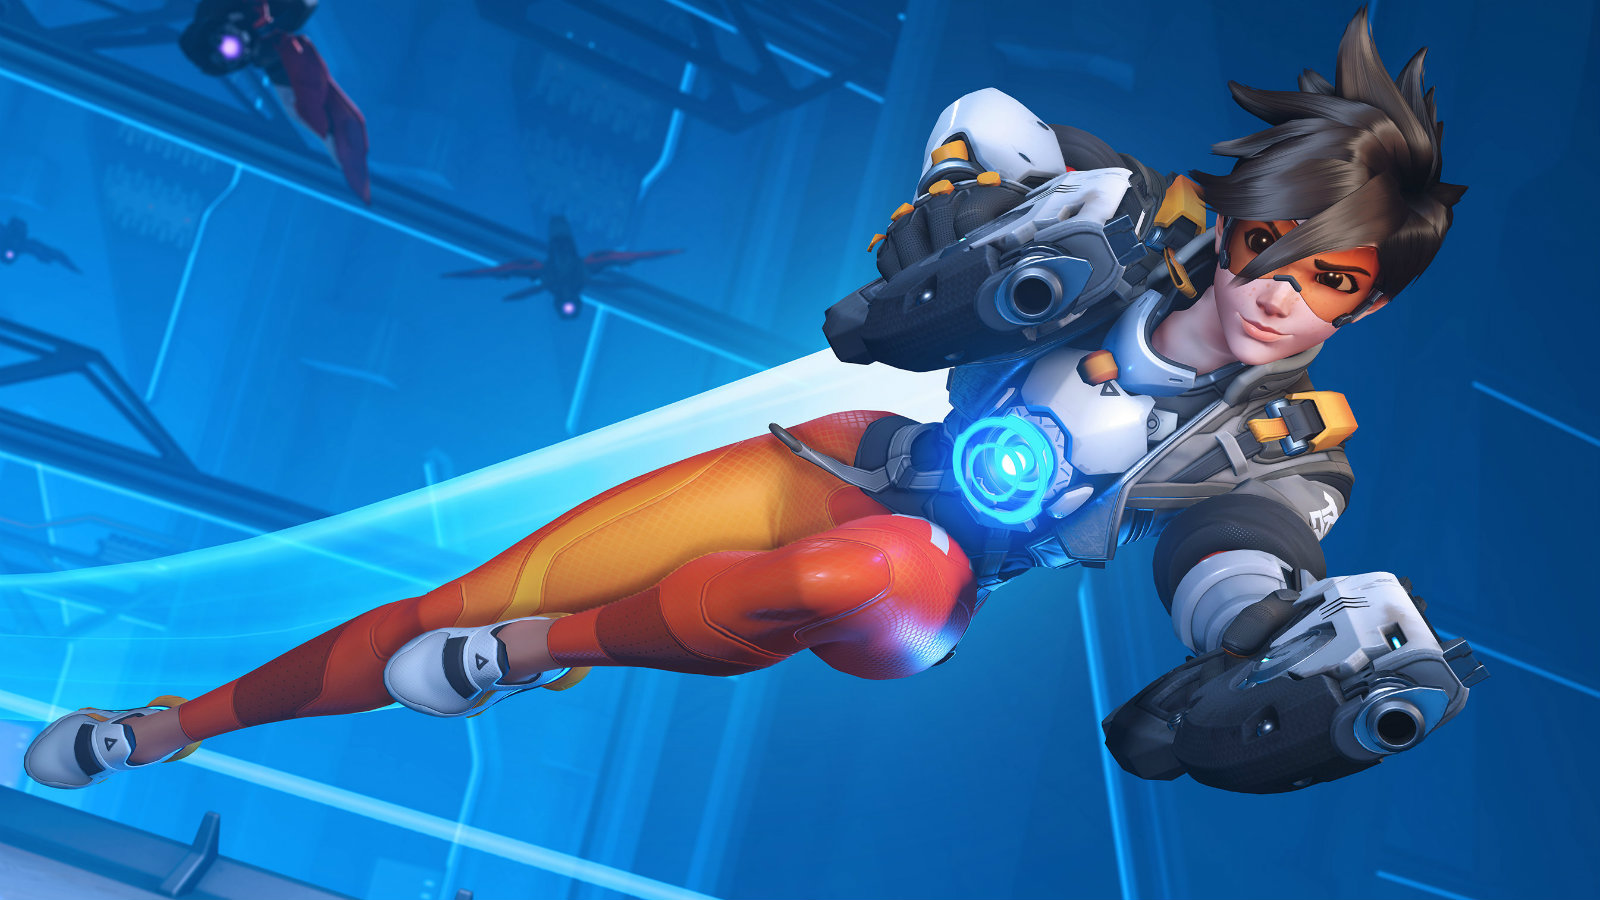 Overwatch devs name their top picks for who they'd like to see in Smash Bros. Ultimate